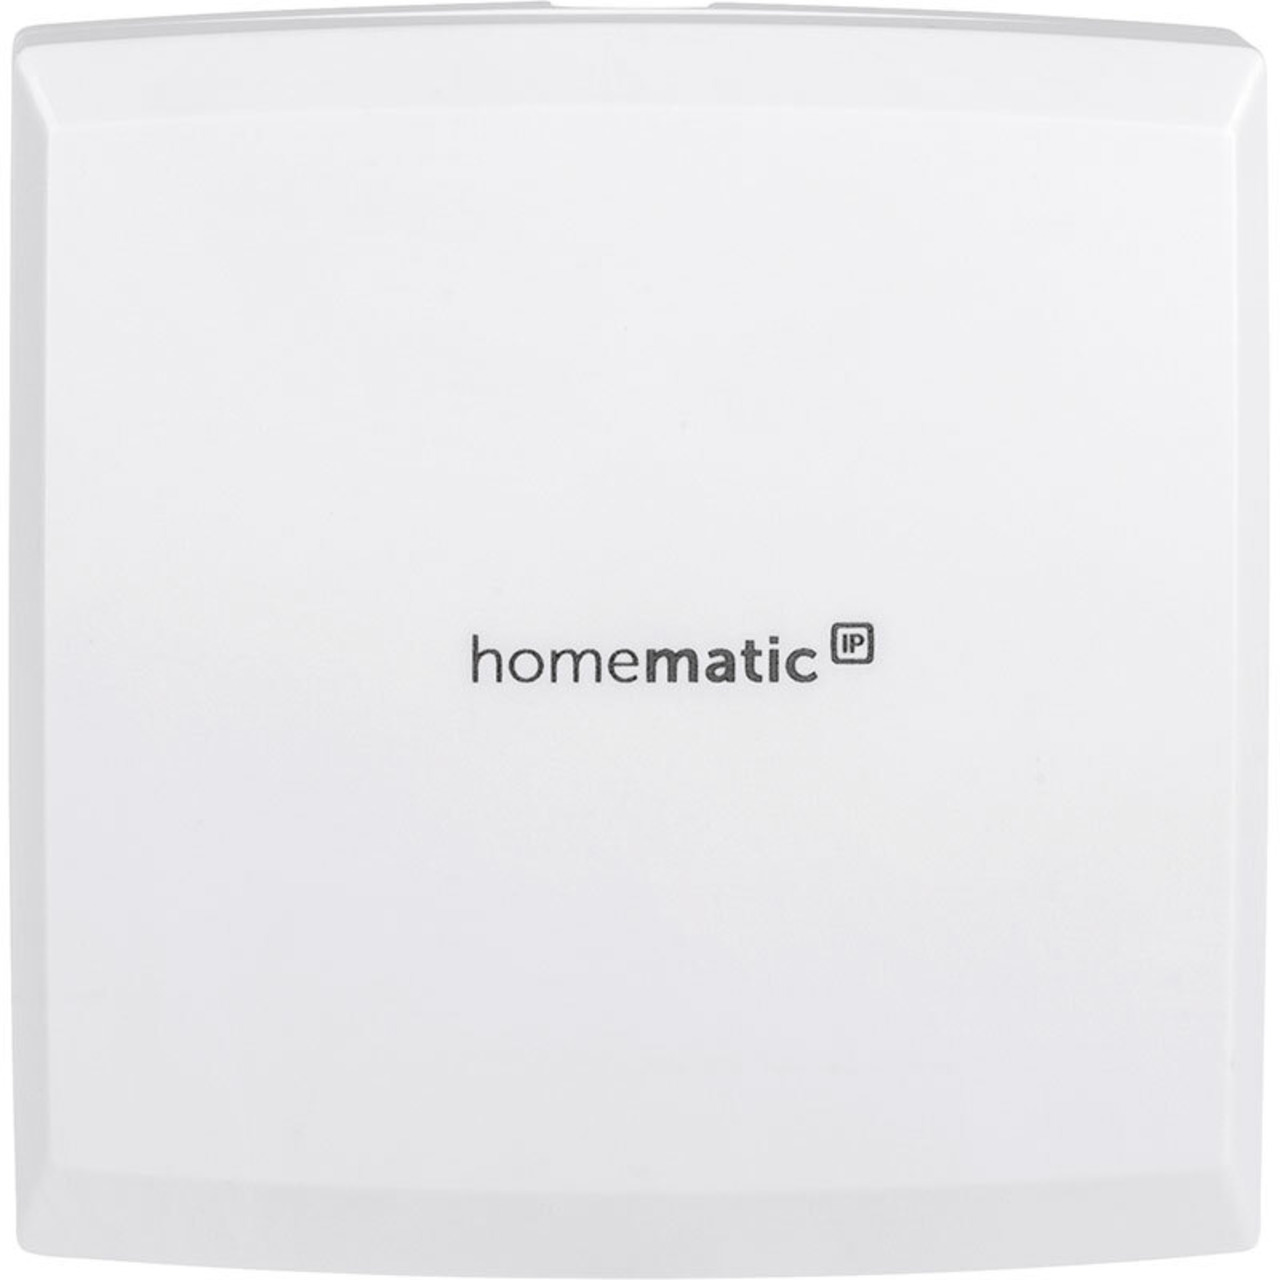 Homematic IP Smart Home Garagentortaster-Schaltaktor HmIP-WGC- fernbedienbar